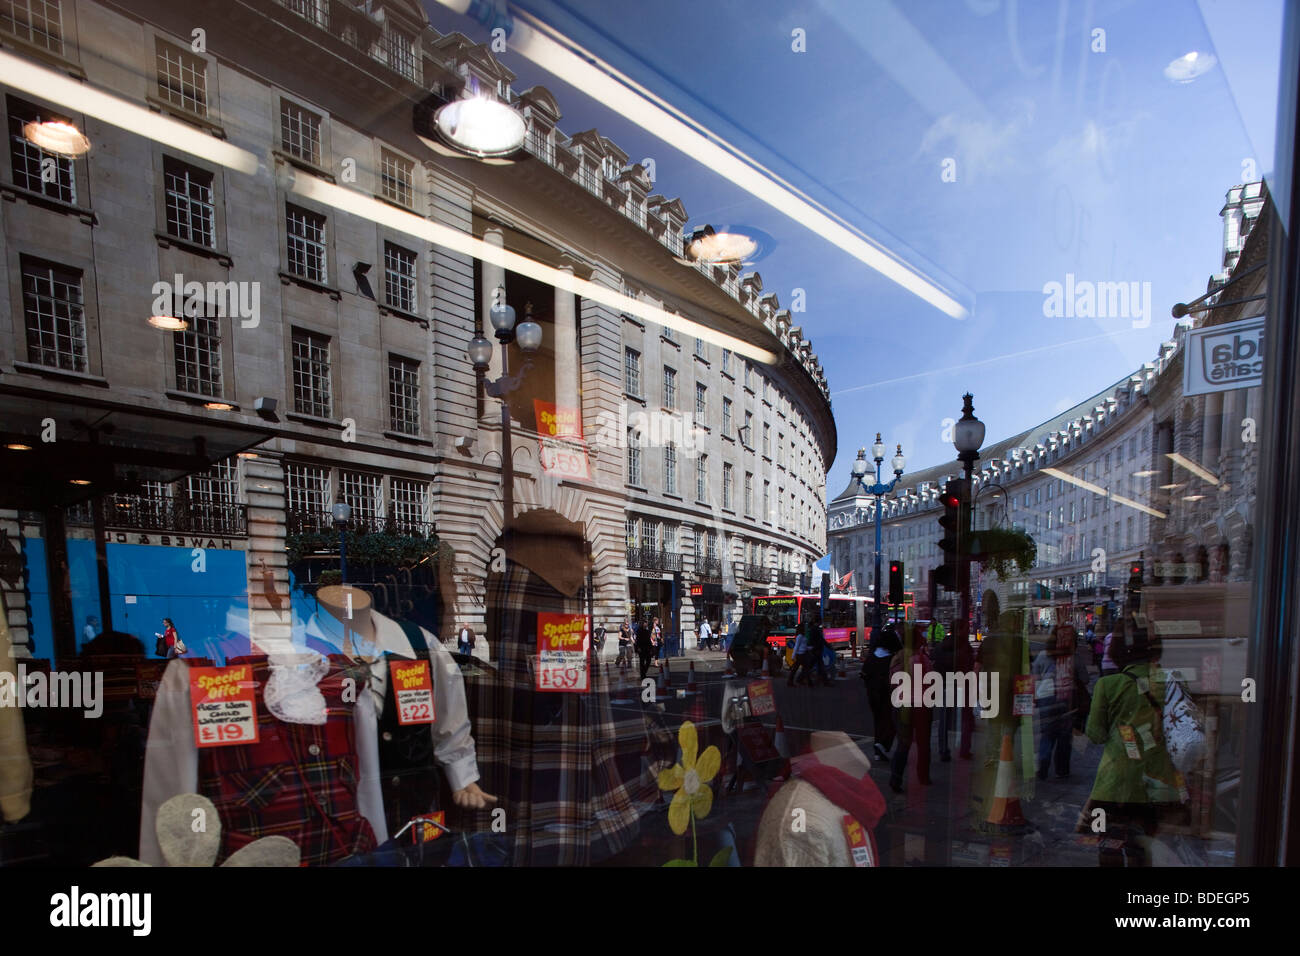 Reflections on a shop window, Regent Street, Westminster, London, England, United Kingdom - Stock Image